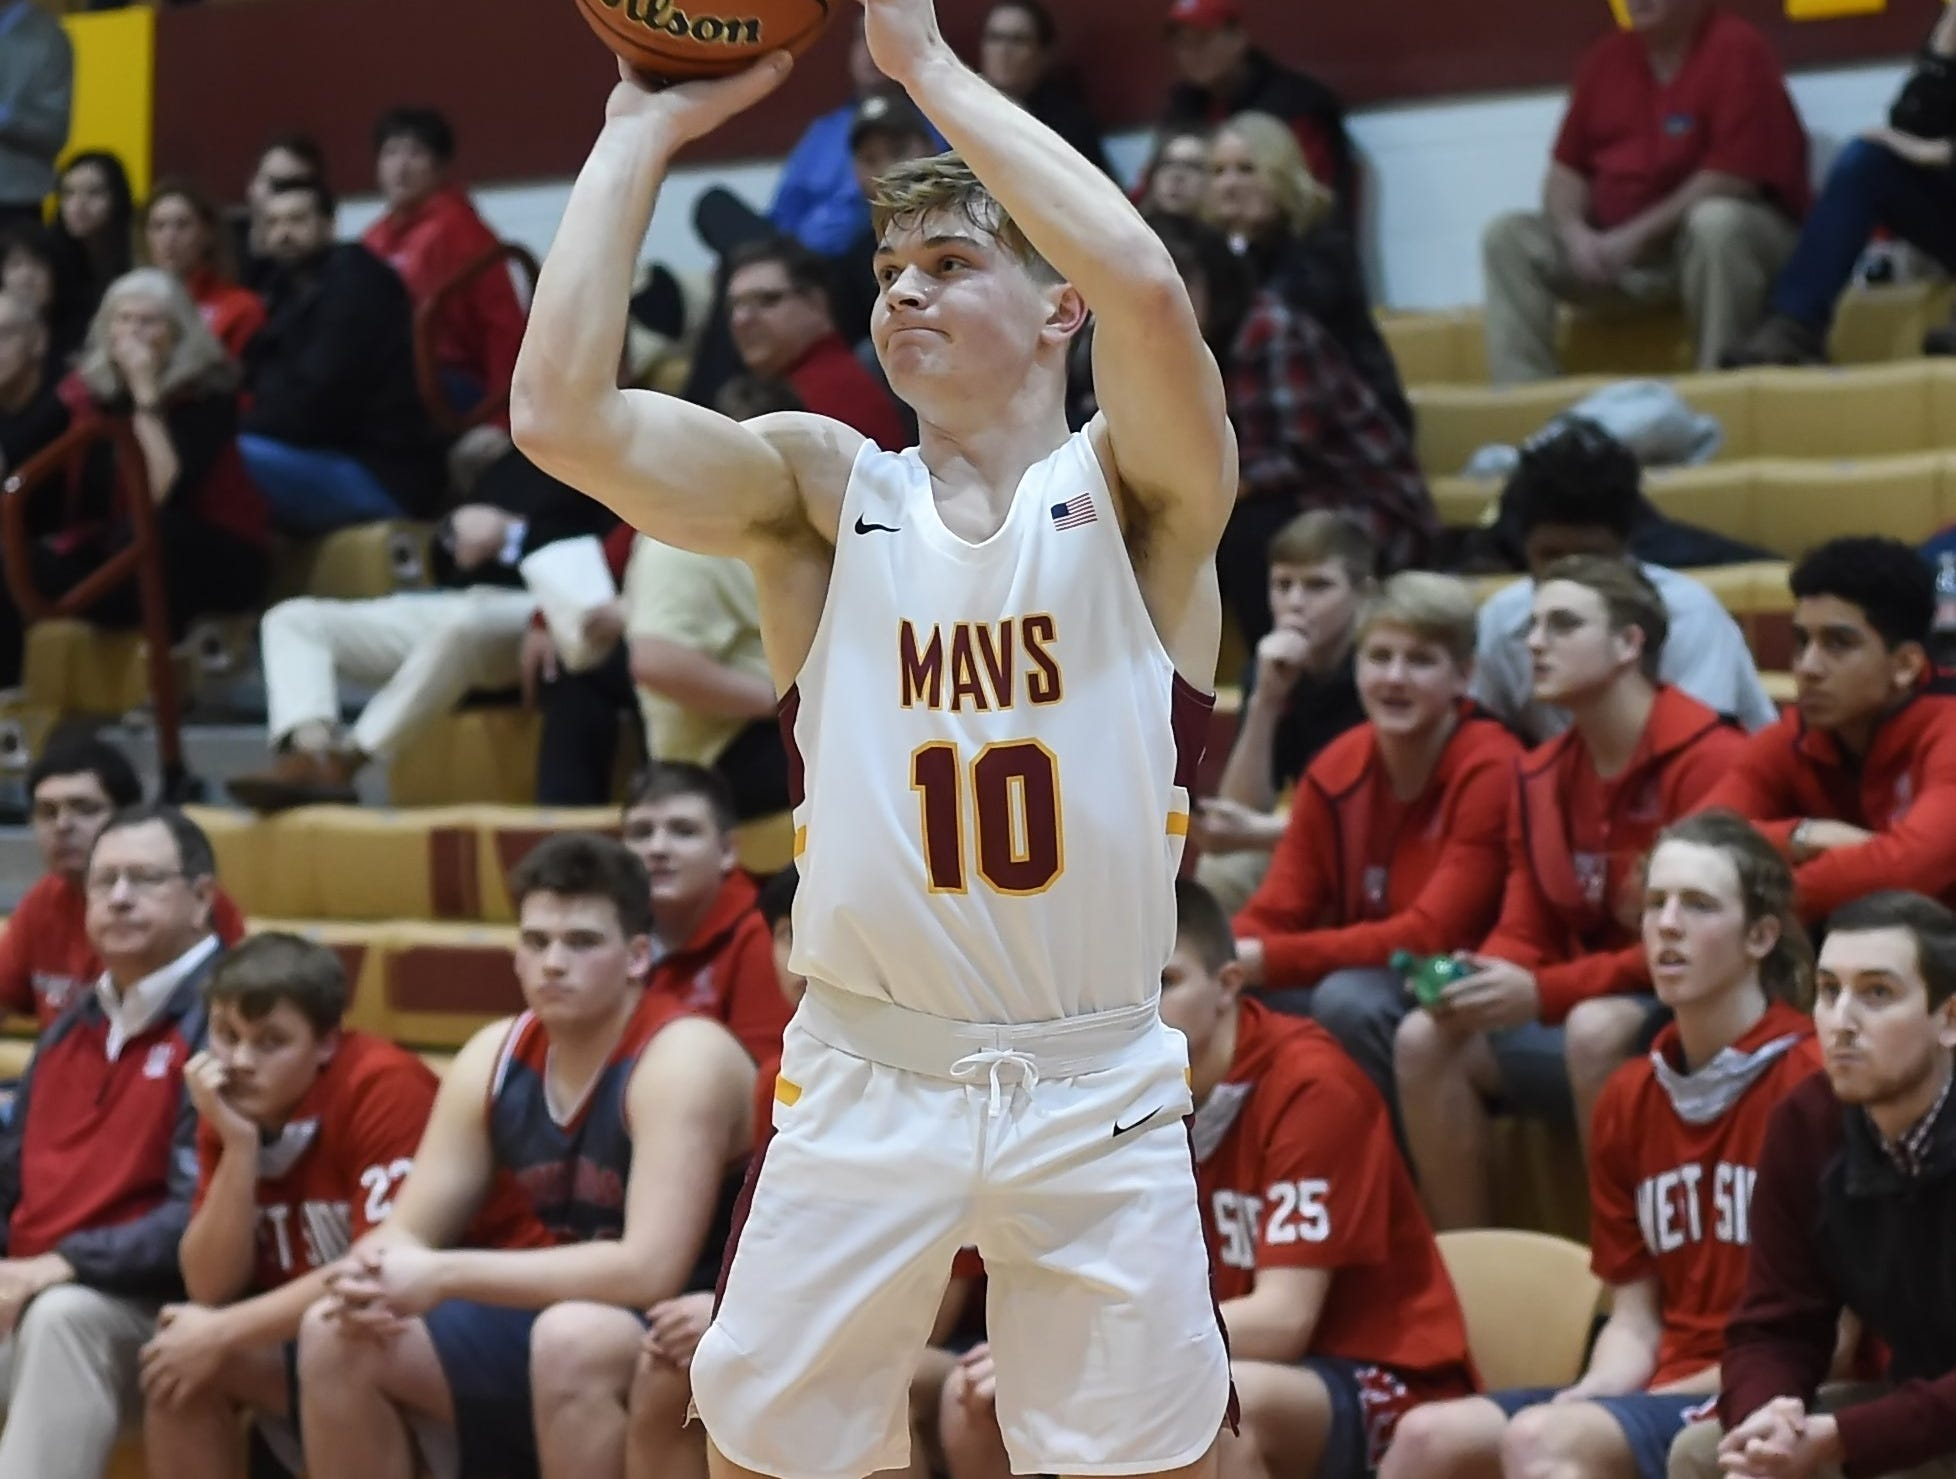 Scenes from Thursday night basketball action as the Mavericks of McCutcheon host the West Side Red Devils. Garrett Maish.